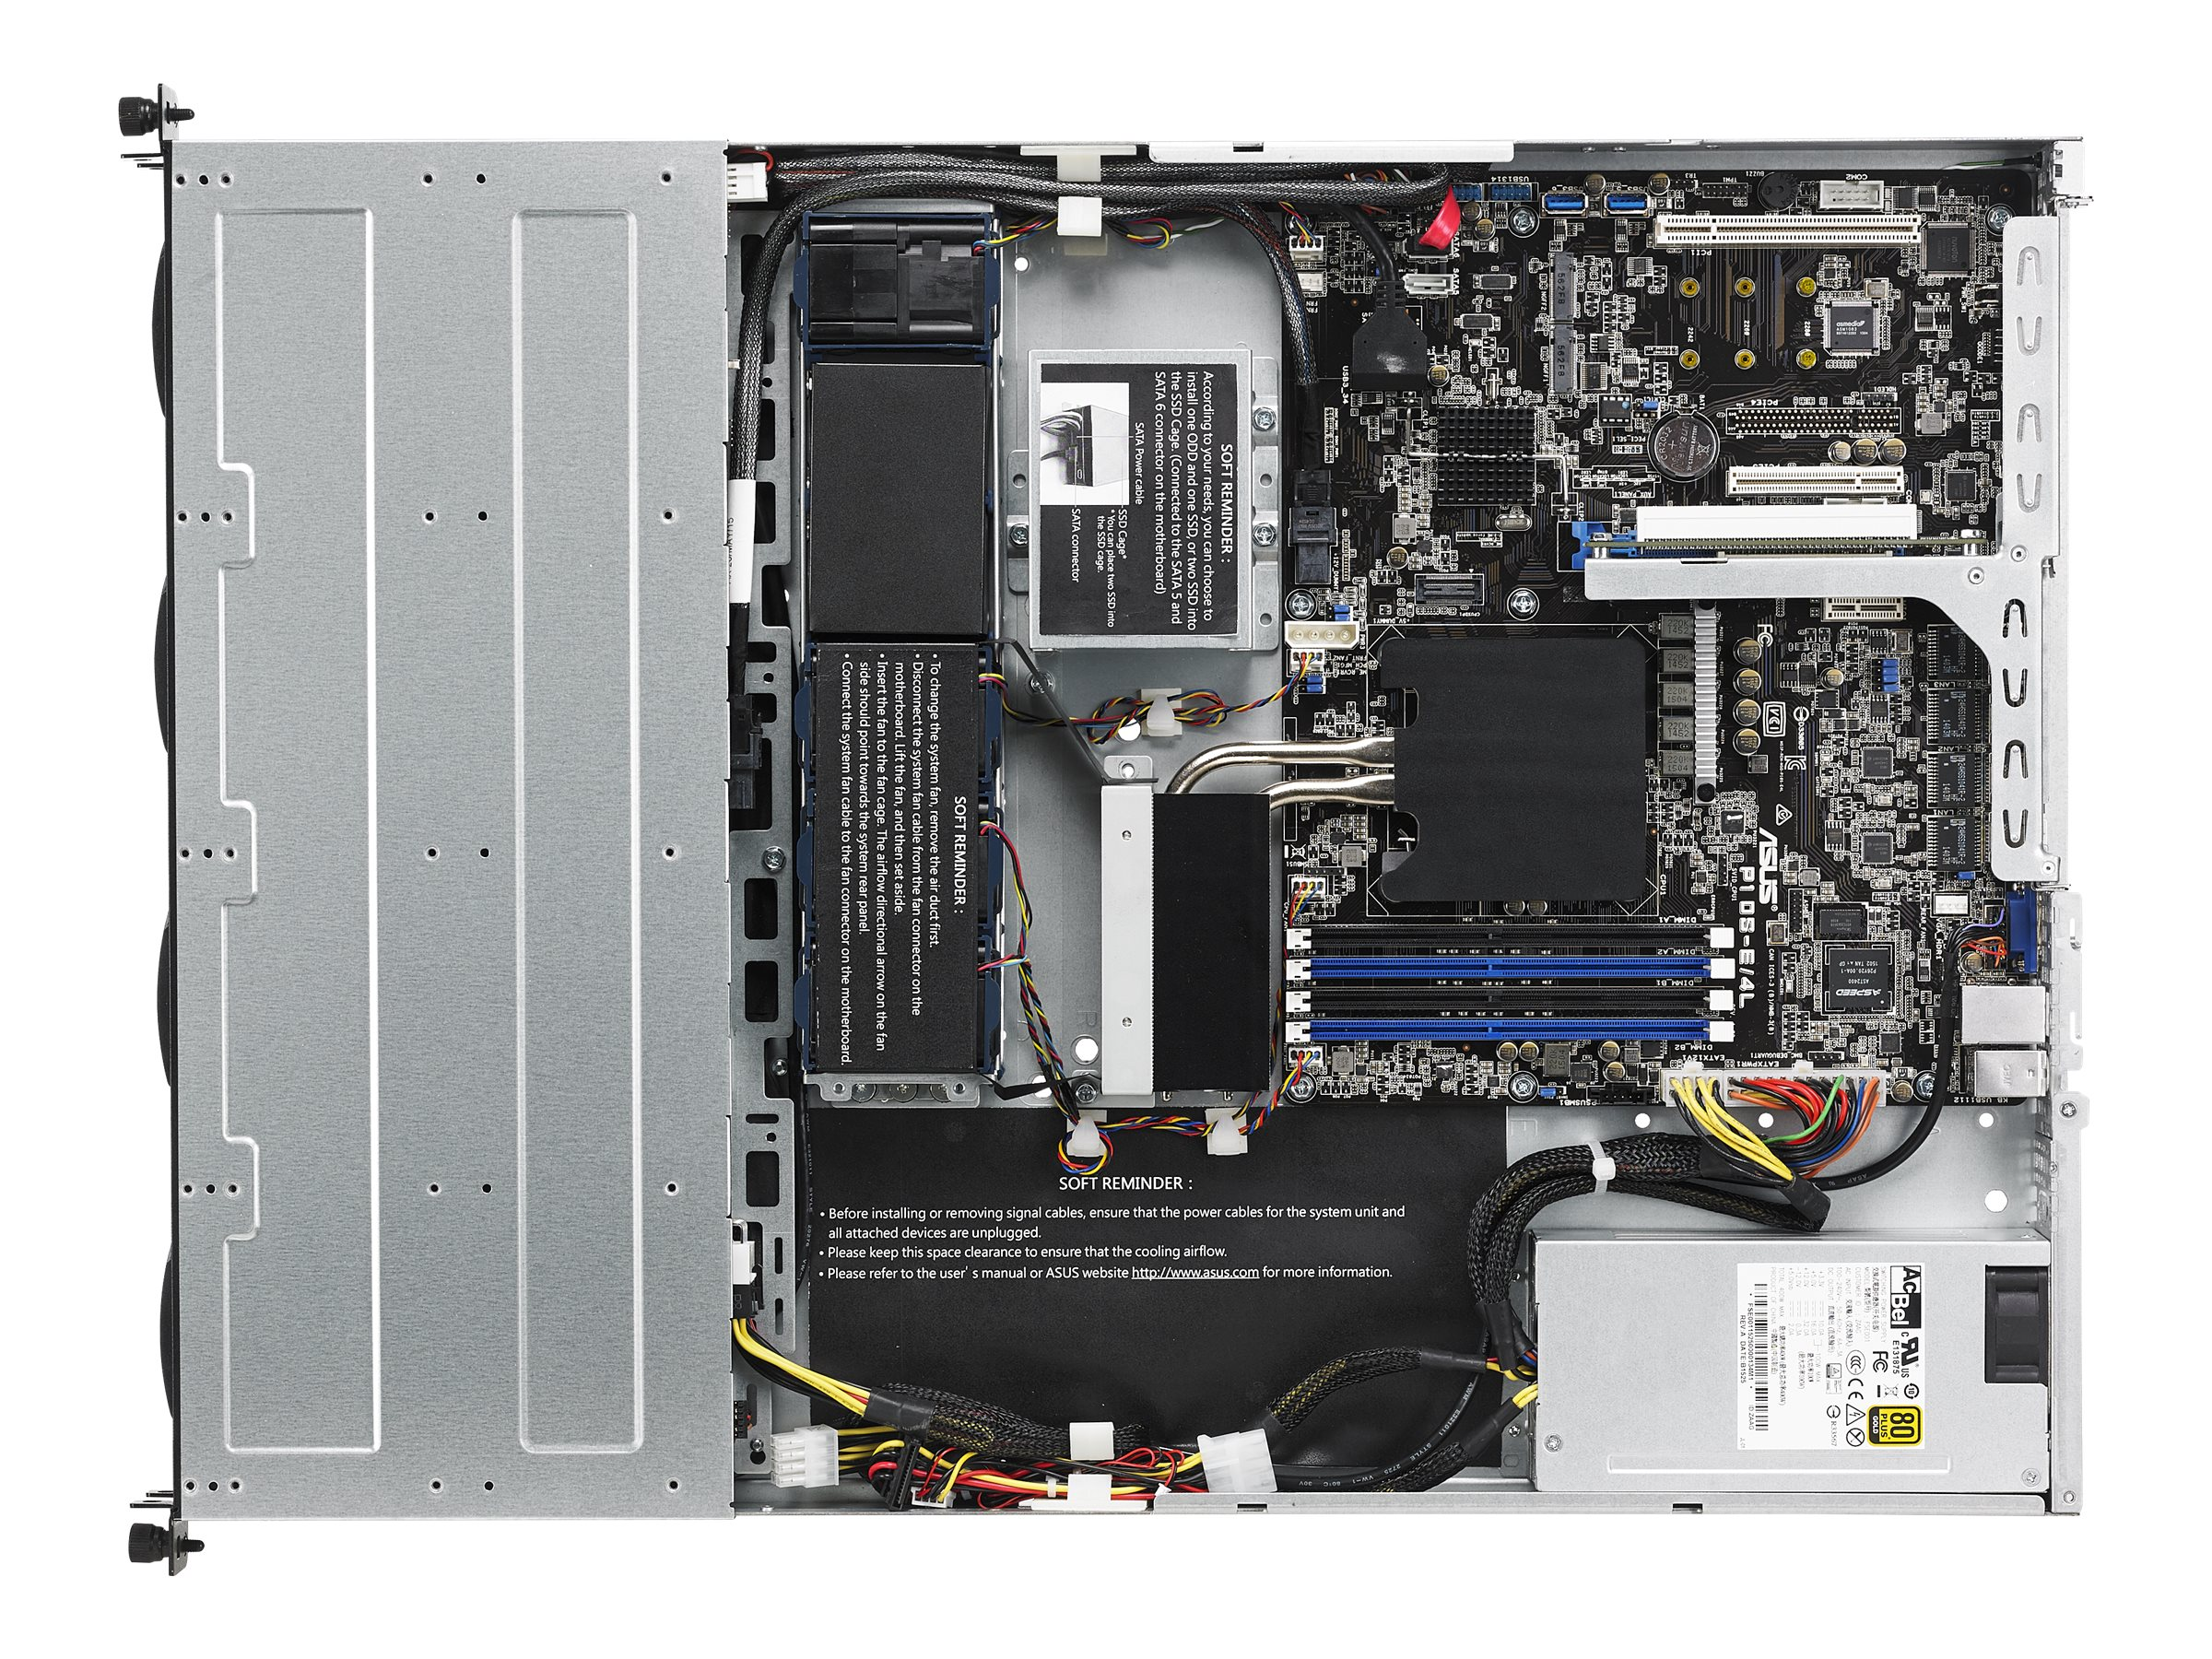 Asus RS300-E9-PS4 Image 4